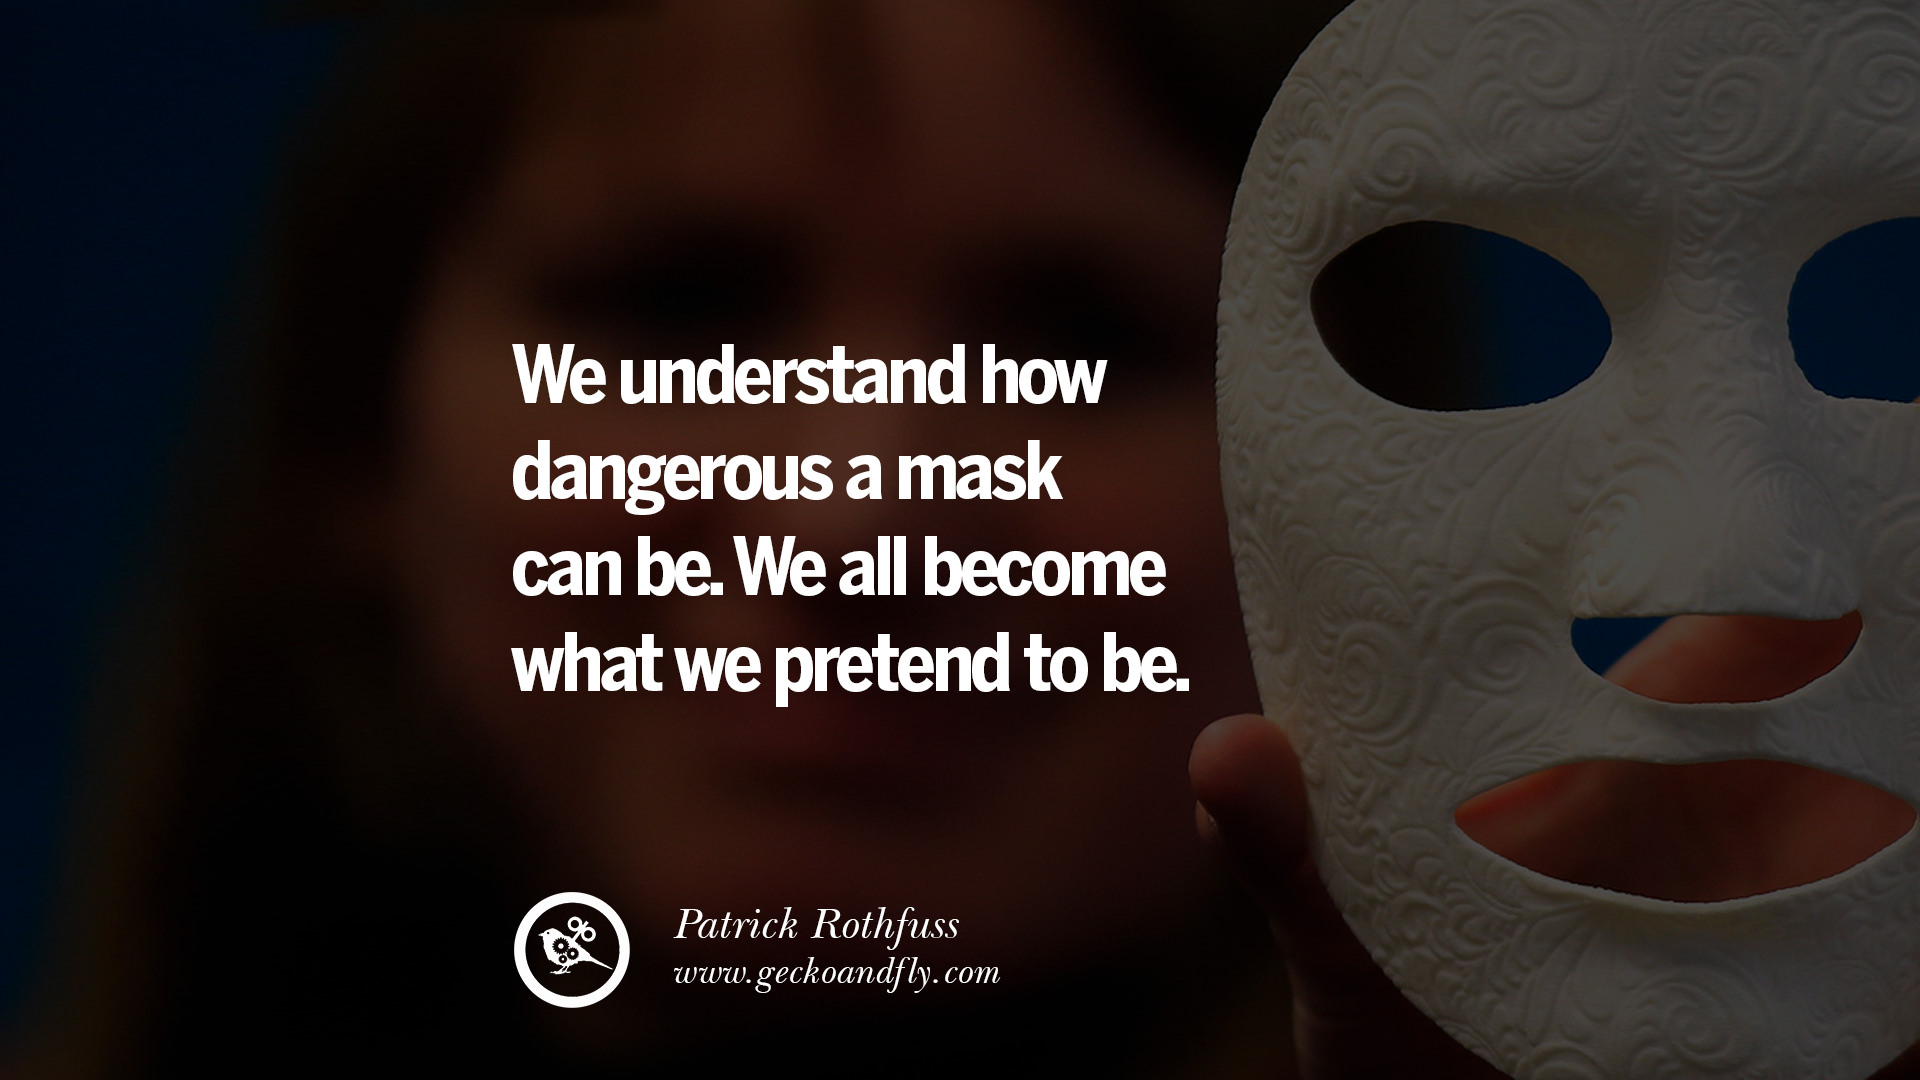 24 Quotes on Wearing a Mask, Lying and Hiding Oneself